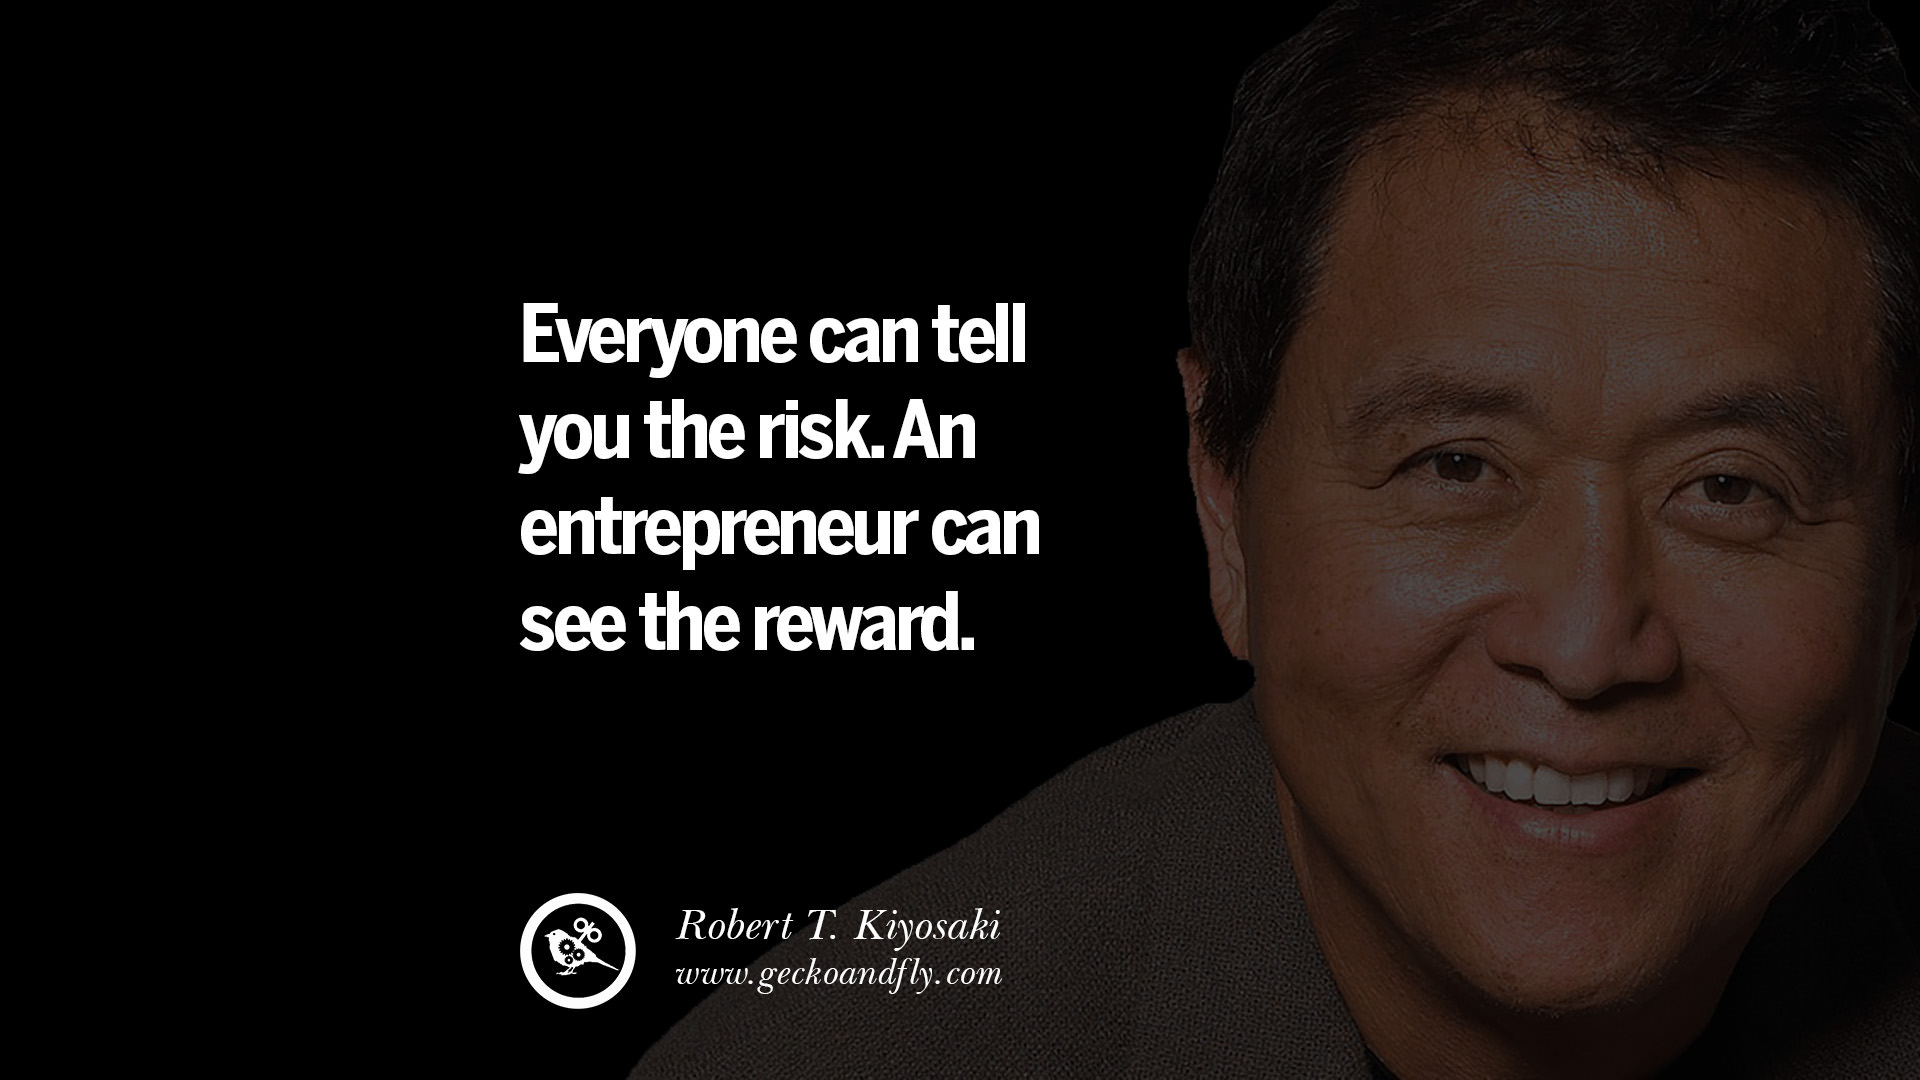 Famous Book Quotes Wallpaper 60 Motivational Robert T Kiyosaki Quotes For Selling